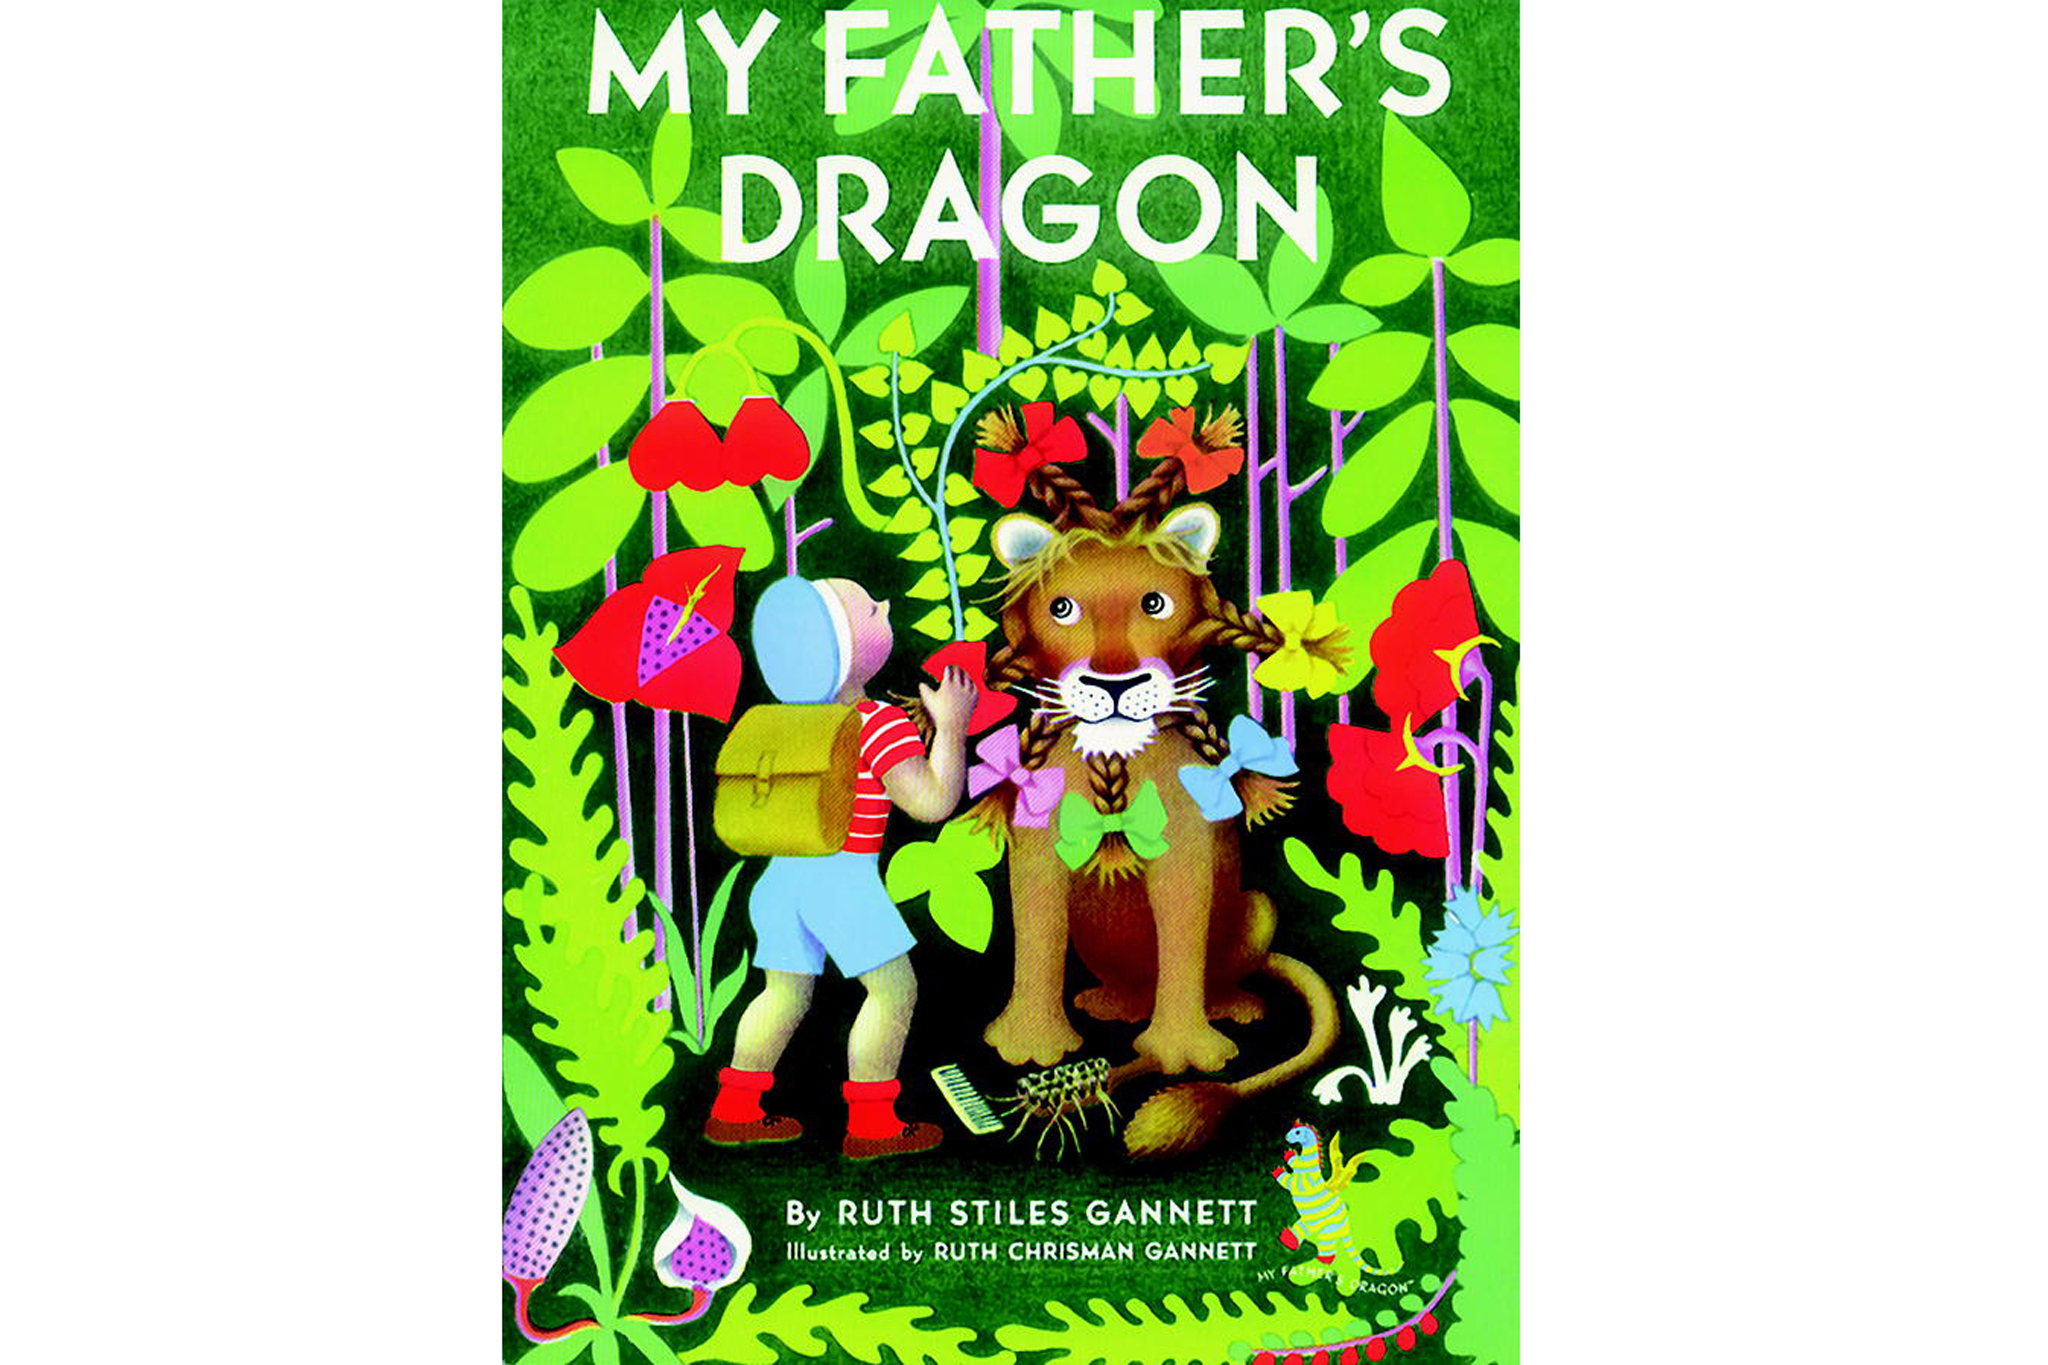 My Father's Dragon by Ruth Gannett Stiles